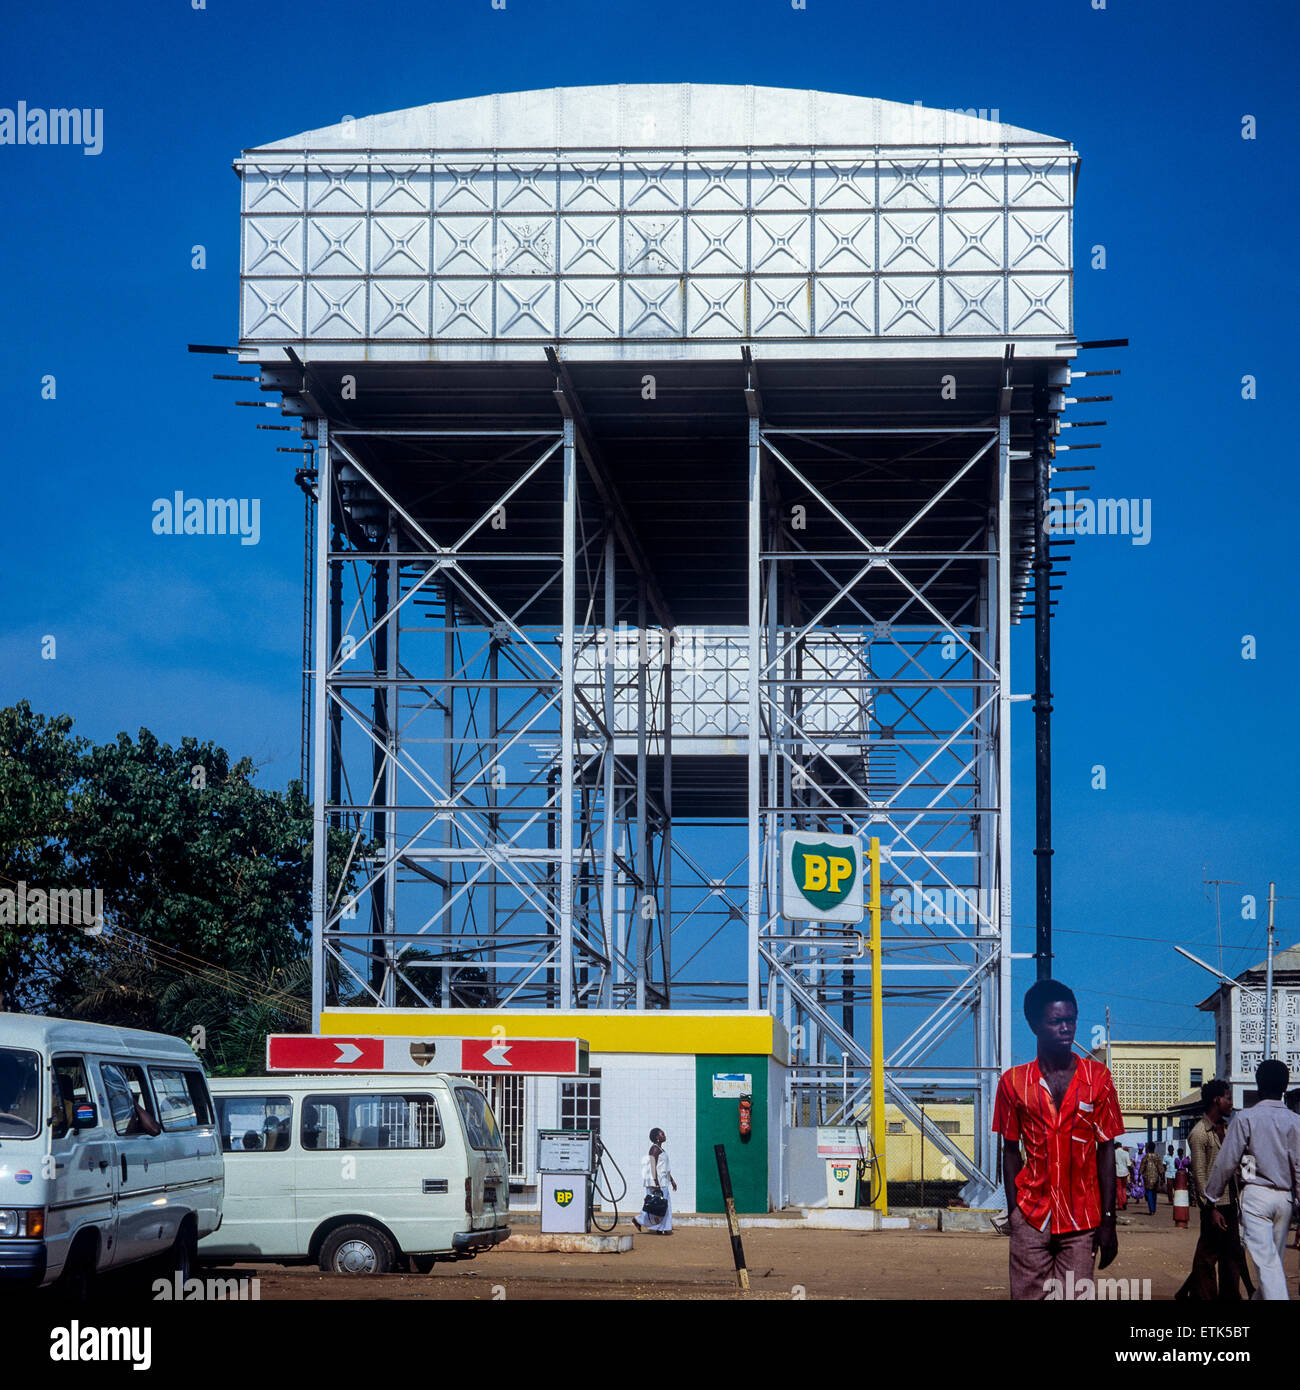 BP Petrol station with raised tanks, Banjul, Gambia, West Africa - Stock Image